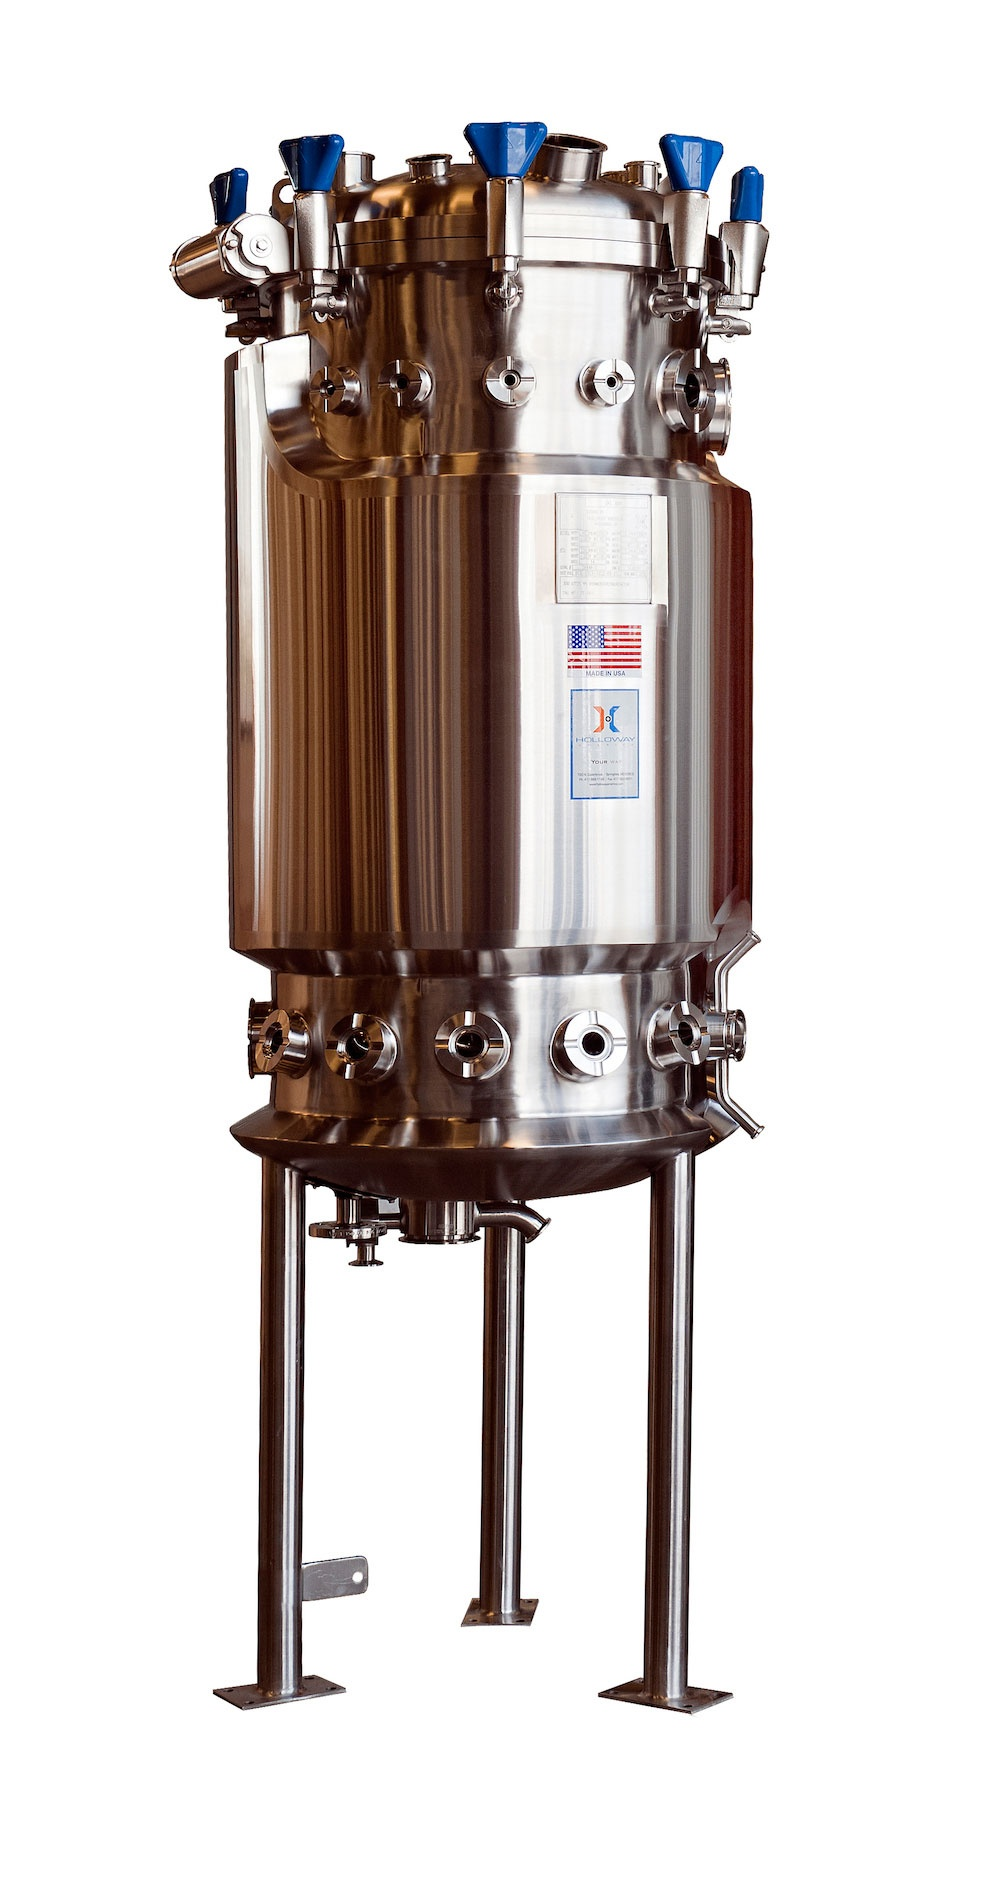 HOLLOWAY proudly produces pharmaceutical stainless steel solutions like this bioreactor.